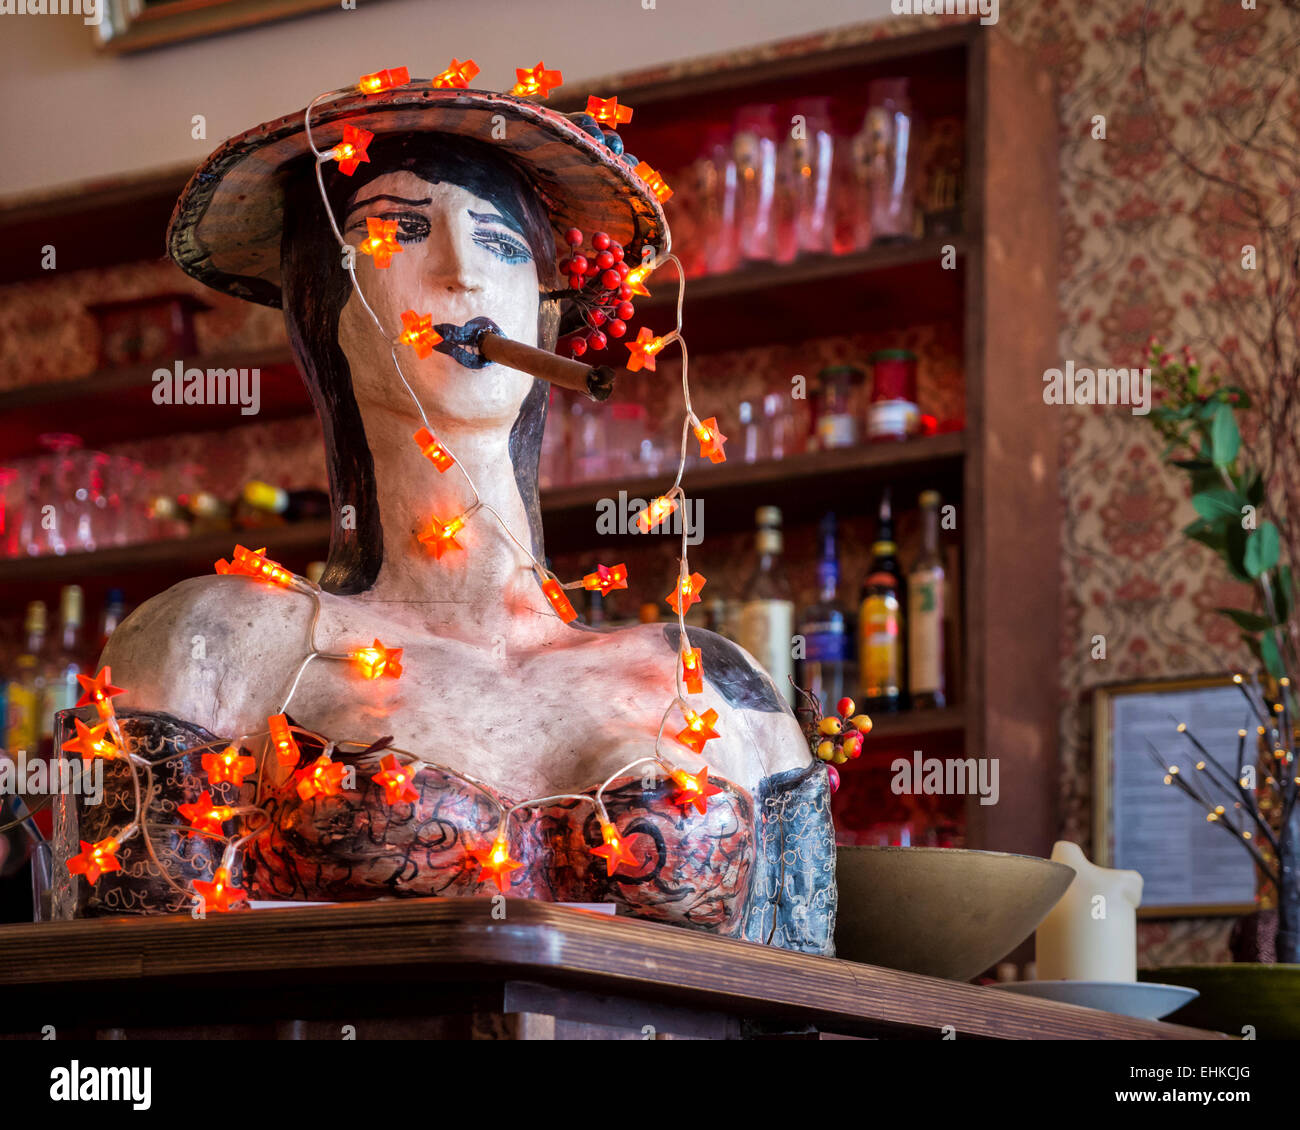 Zur Rose bar and restaurant interior with papier mache bust of woman smoking a cigar and draped in lights, Mitte, - Stock Image